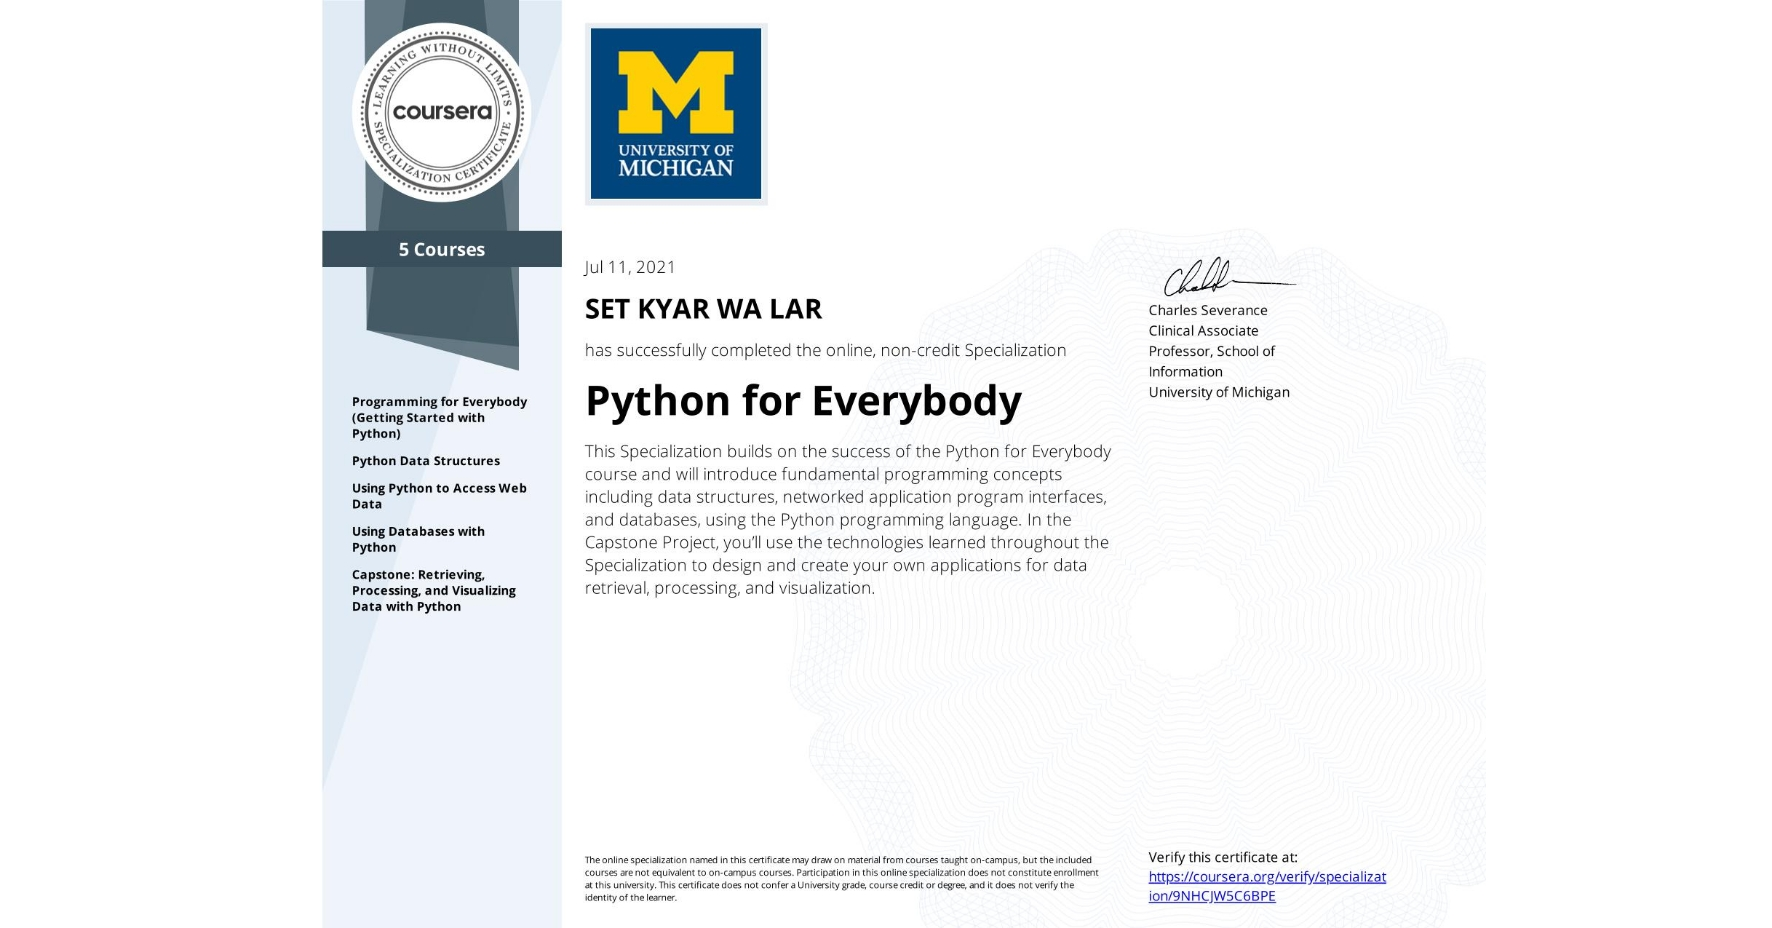 View certificate for  SET KYAR WA LAR, Python for Everybody, offered through Coursera. This Specialization builds on the success of the Python for Everybody course and will introduce fundamental programming concepts including data structures, networked application program interfaces, and databases, using the Python programming language. In the Capstone Project, you'll use the technologies learned throughout the Specialization to design and create your own applications for data retrieval, processing, and visualization.